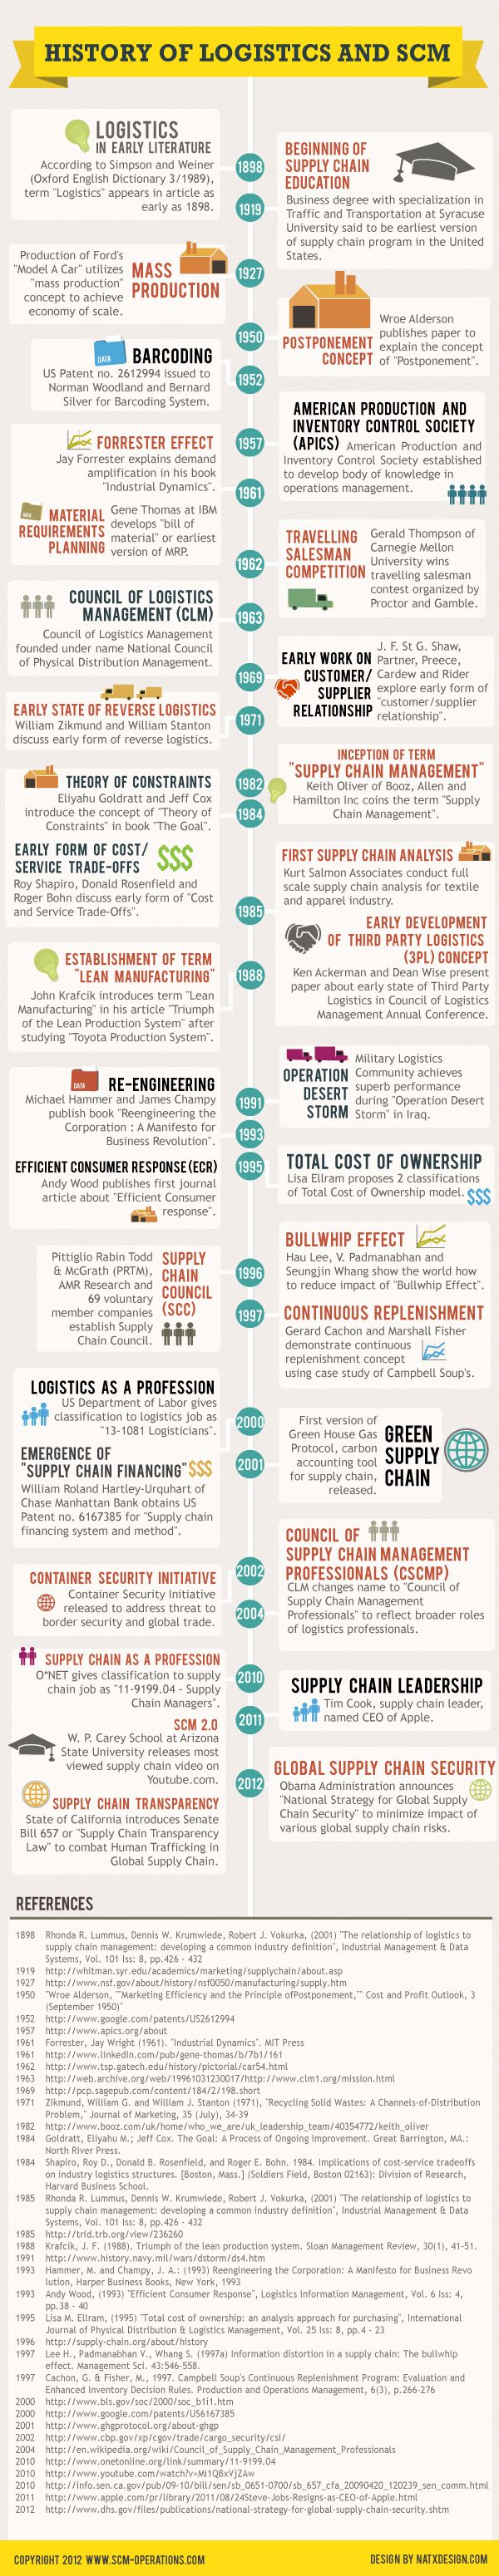 History of Logistics and SCM #infographic #socialmedia #logistic #in